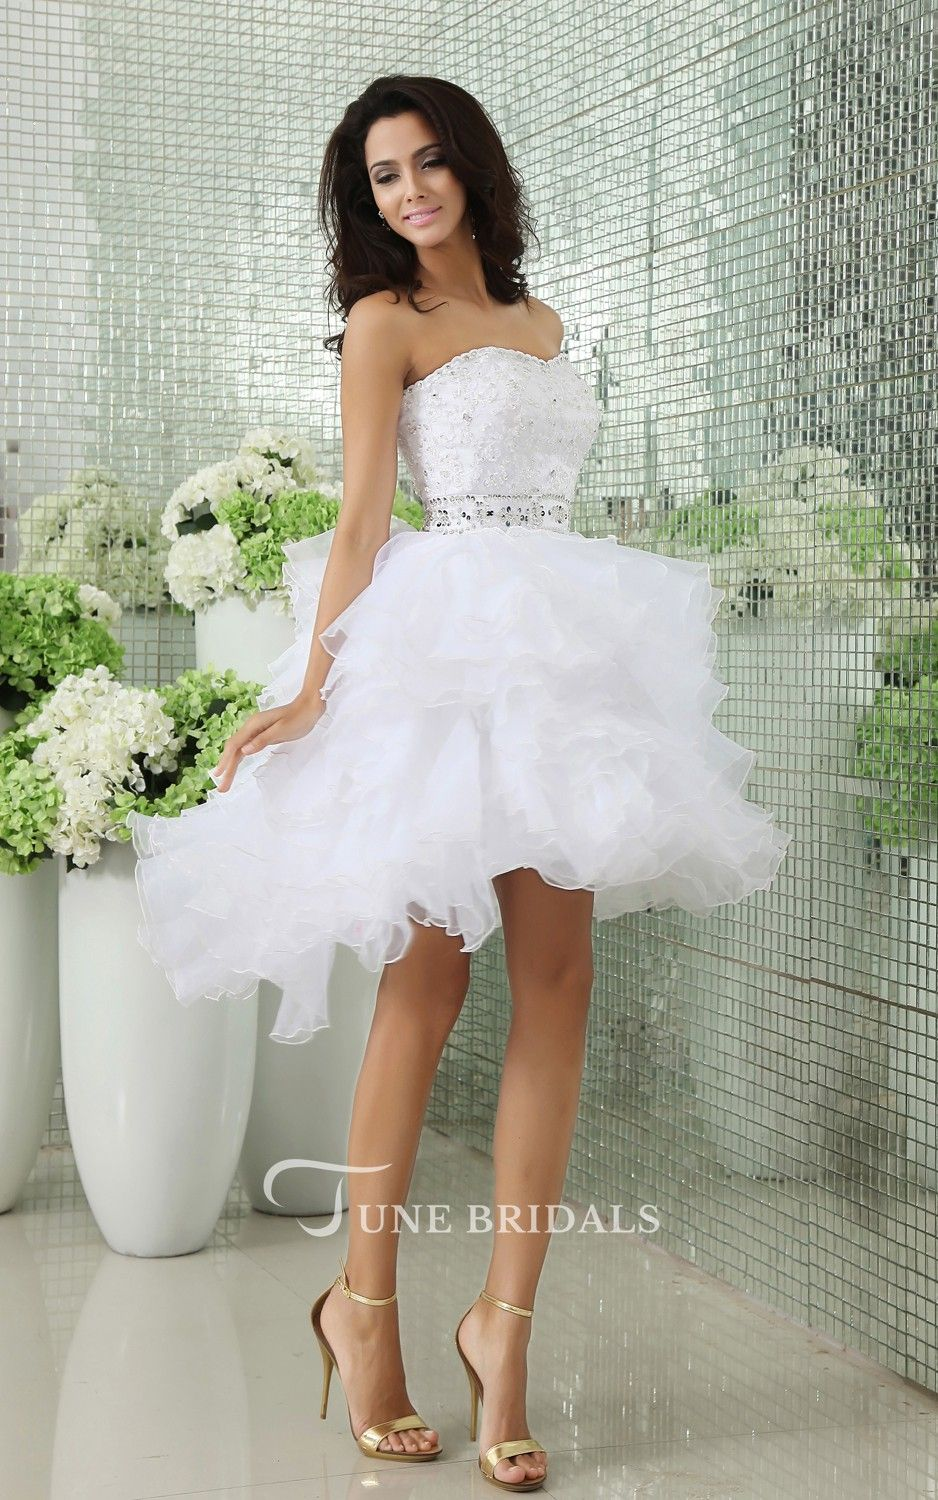 Fluffy wedding dresses  Strapless Short Layers Dress With Crystal Detailings And Ruffles